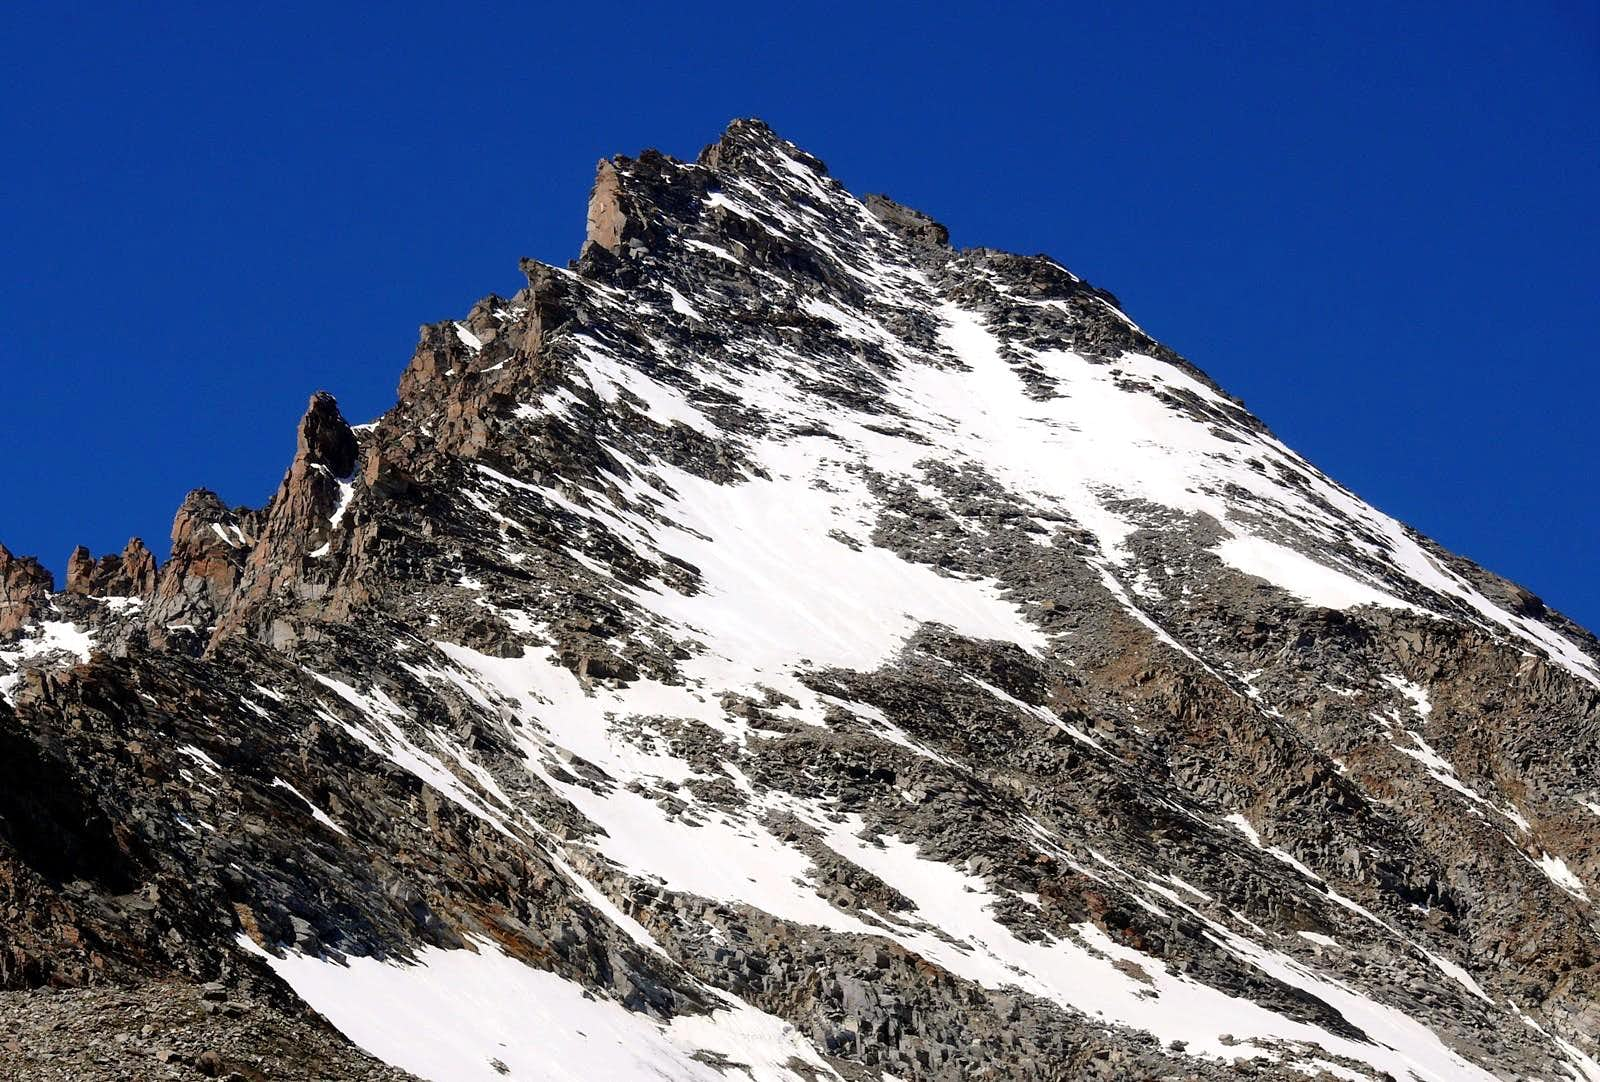 <font color=blue>▲</font>The famous 3500m in the Aosta Valley and the normal route or no (Cogne Valley)